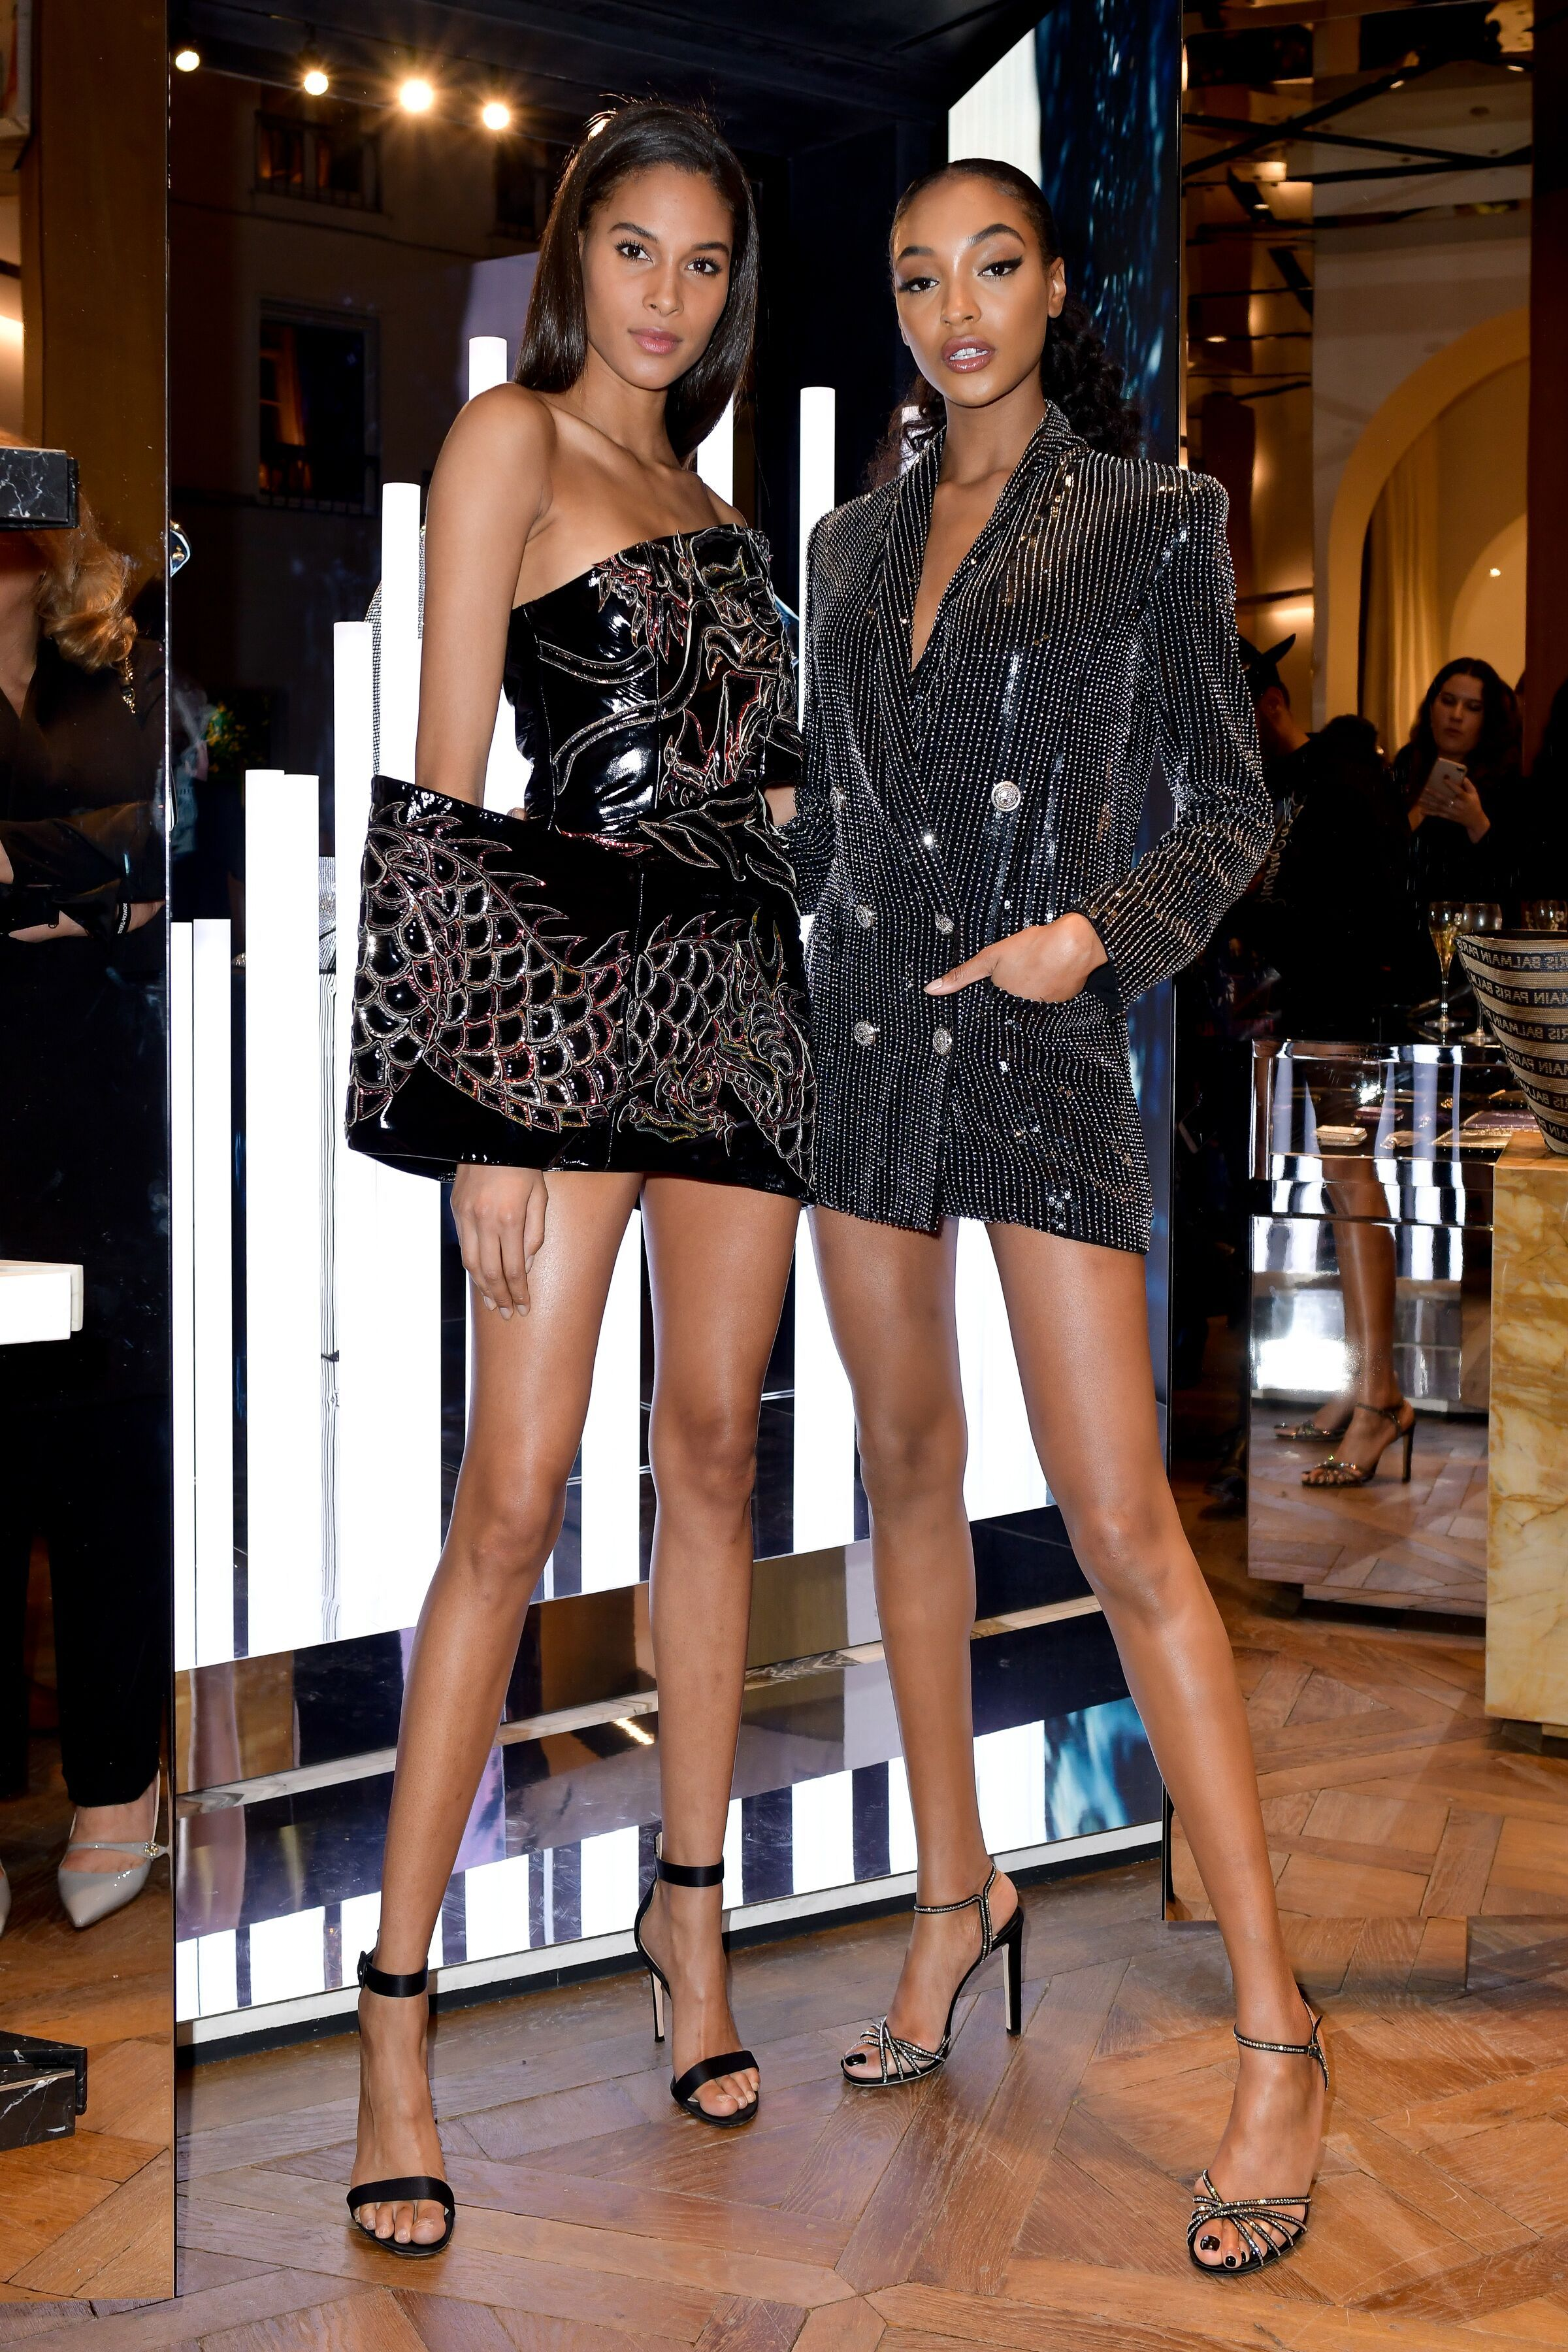 Cindy Bruna and Jourdan Dunn Cindy Bruna and Jourdan Dunn in Paris to celebrate the opening of the new Balmain store, 374 rue Saint Honoré 75001 on March 2.